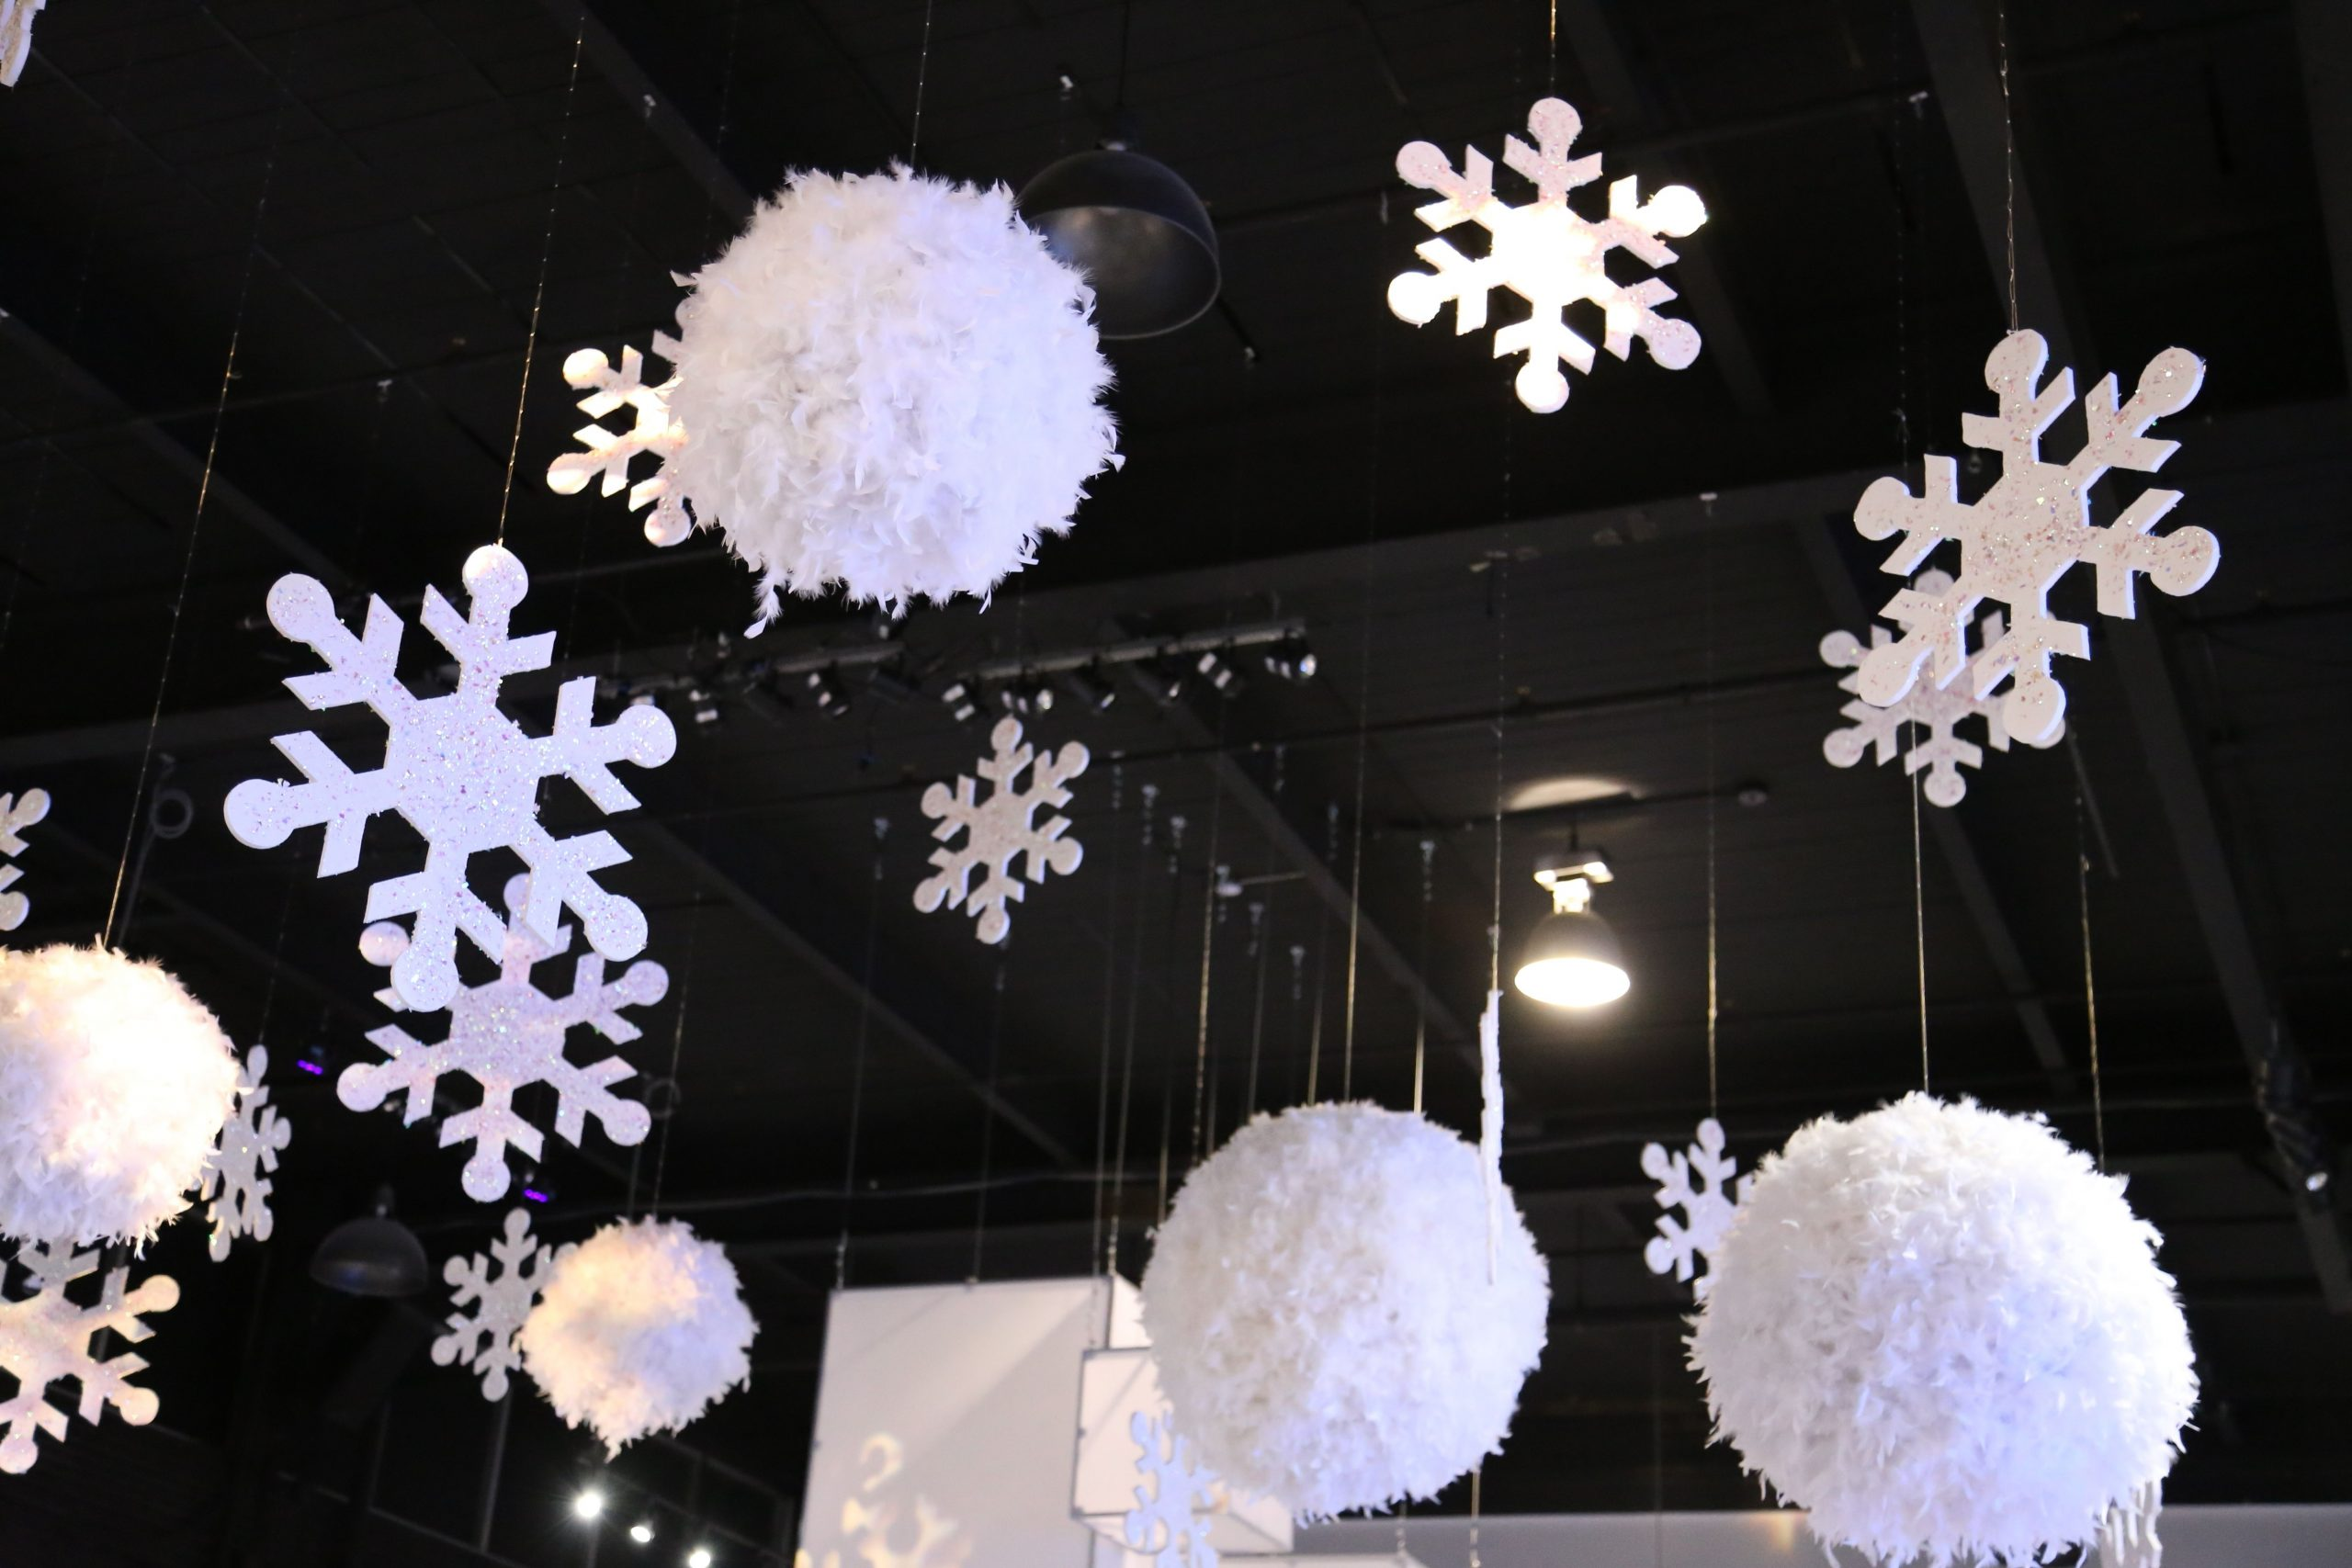 Ceiling Decor Hanging Snowflakes Hanging Snowballs